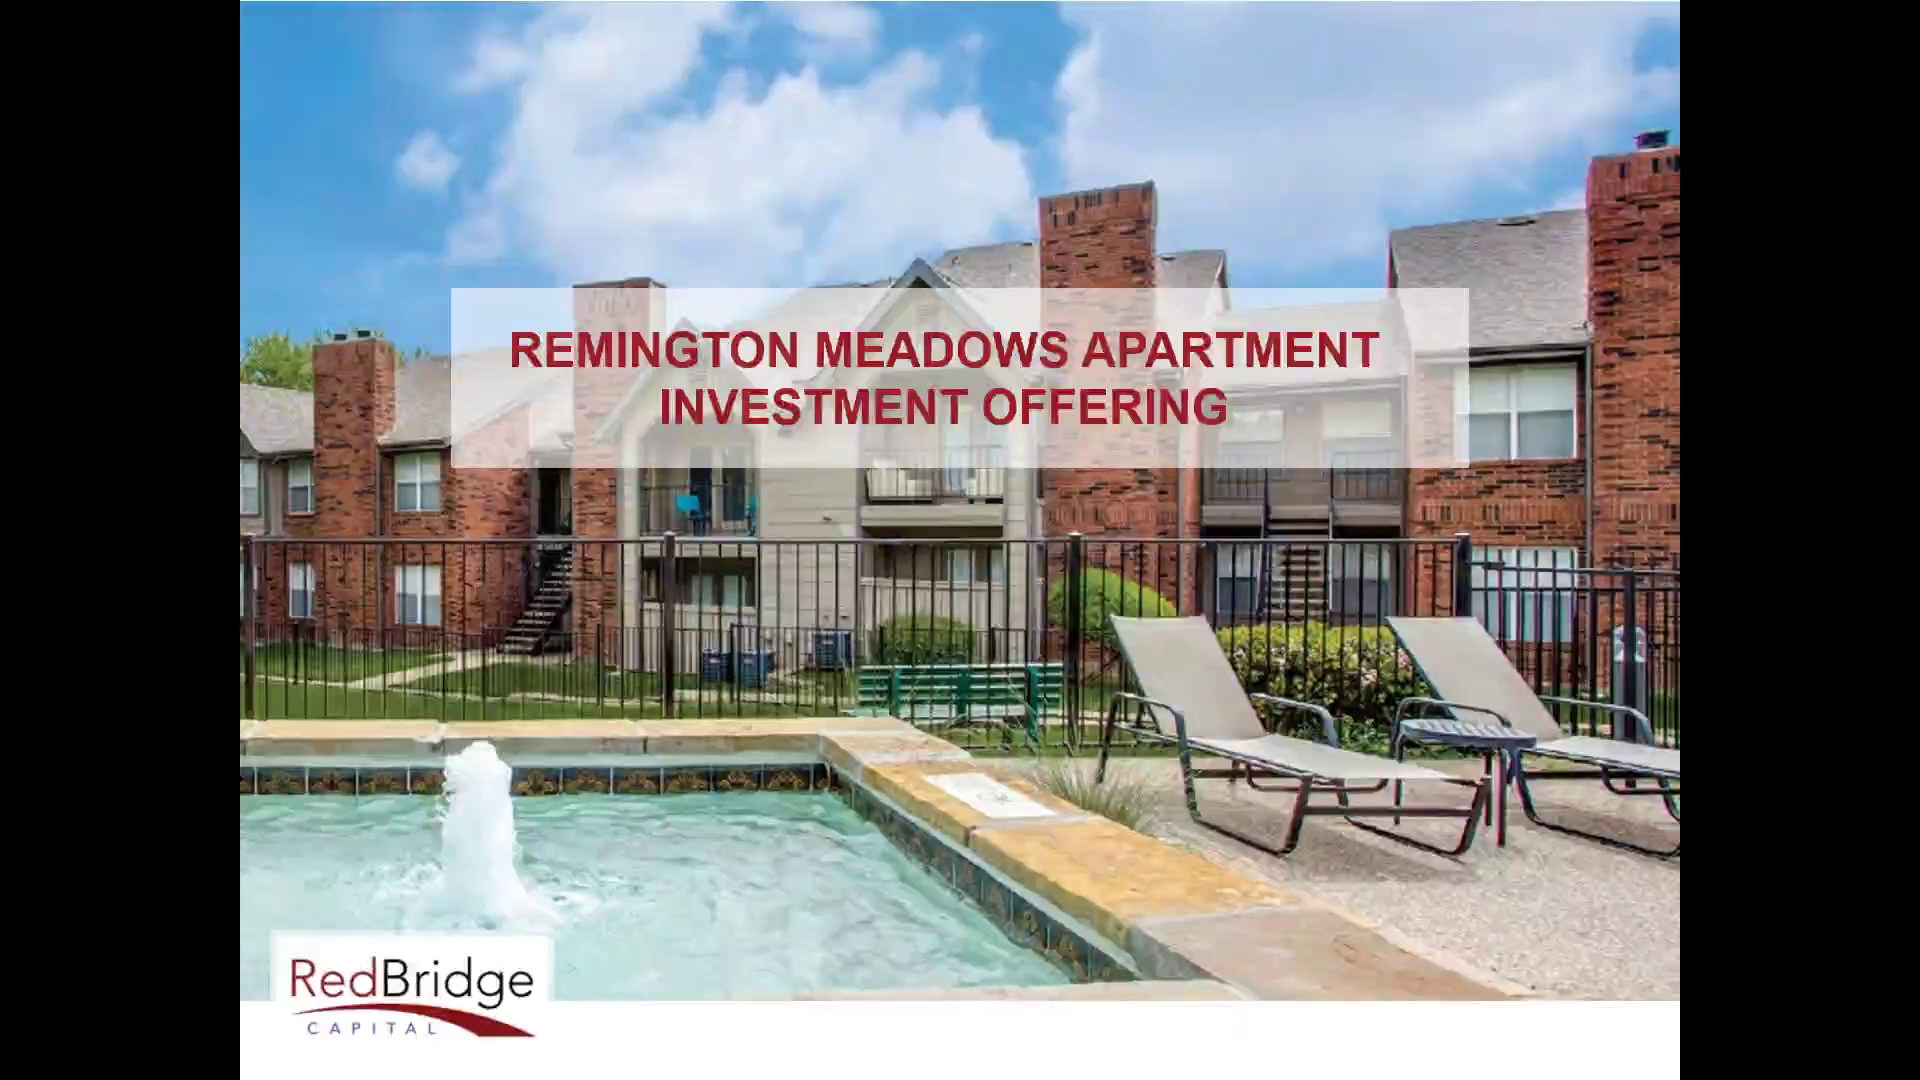 Investment Video - Remington Meadows Apartments